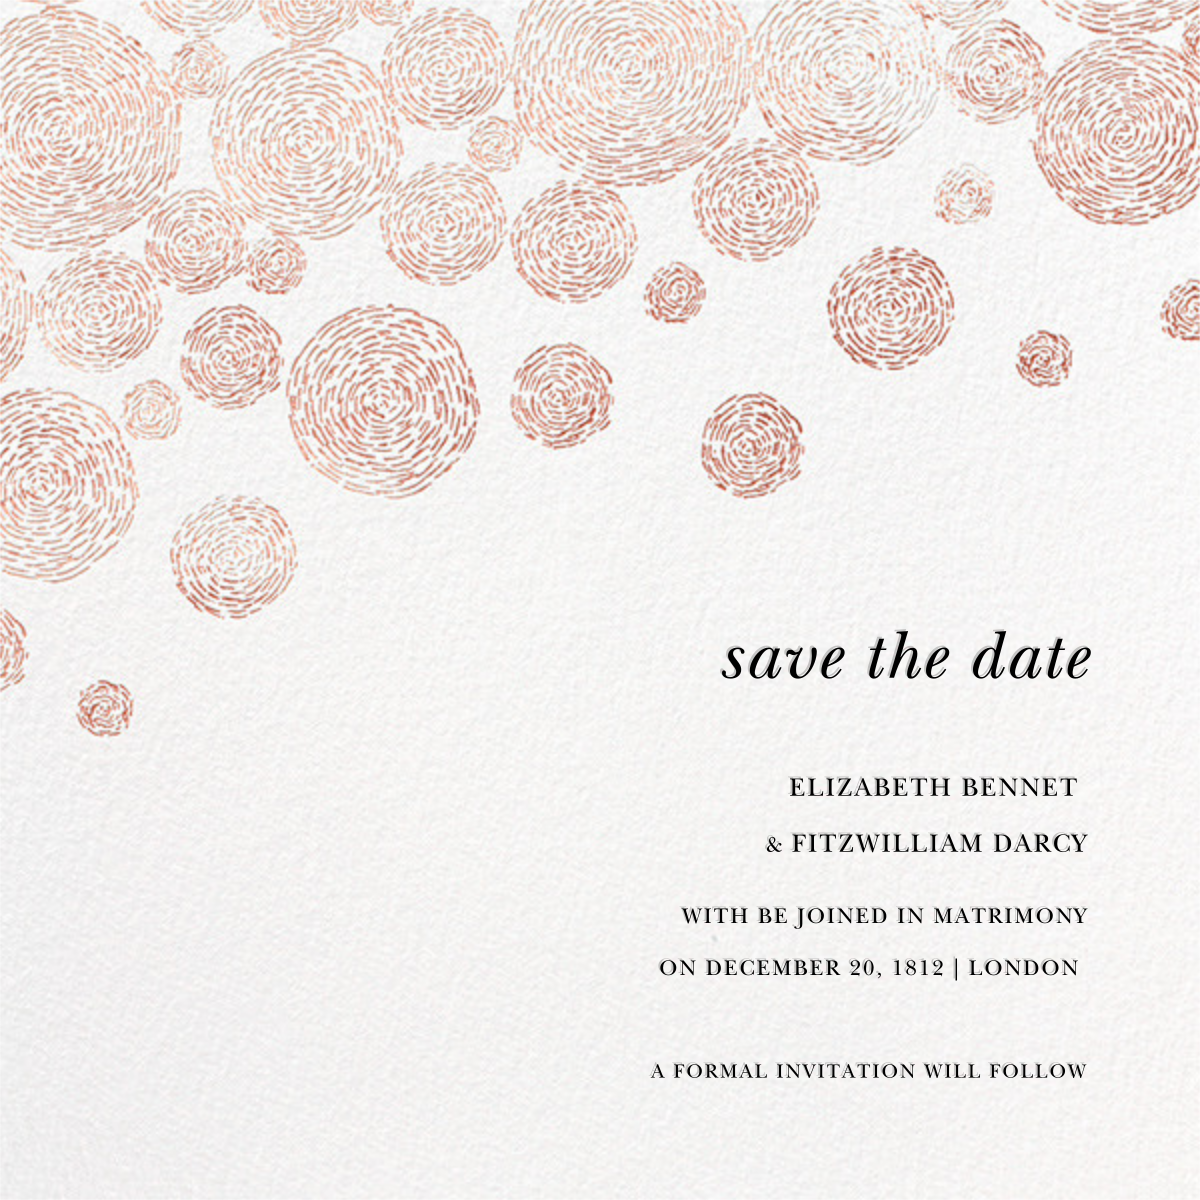 Radiant Swirls (Save the Date) - Rose Gold - Oscar de la Renta - Save the date